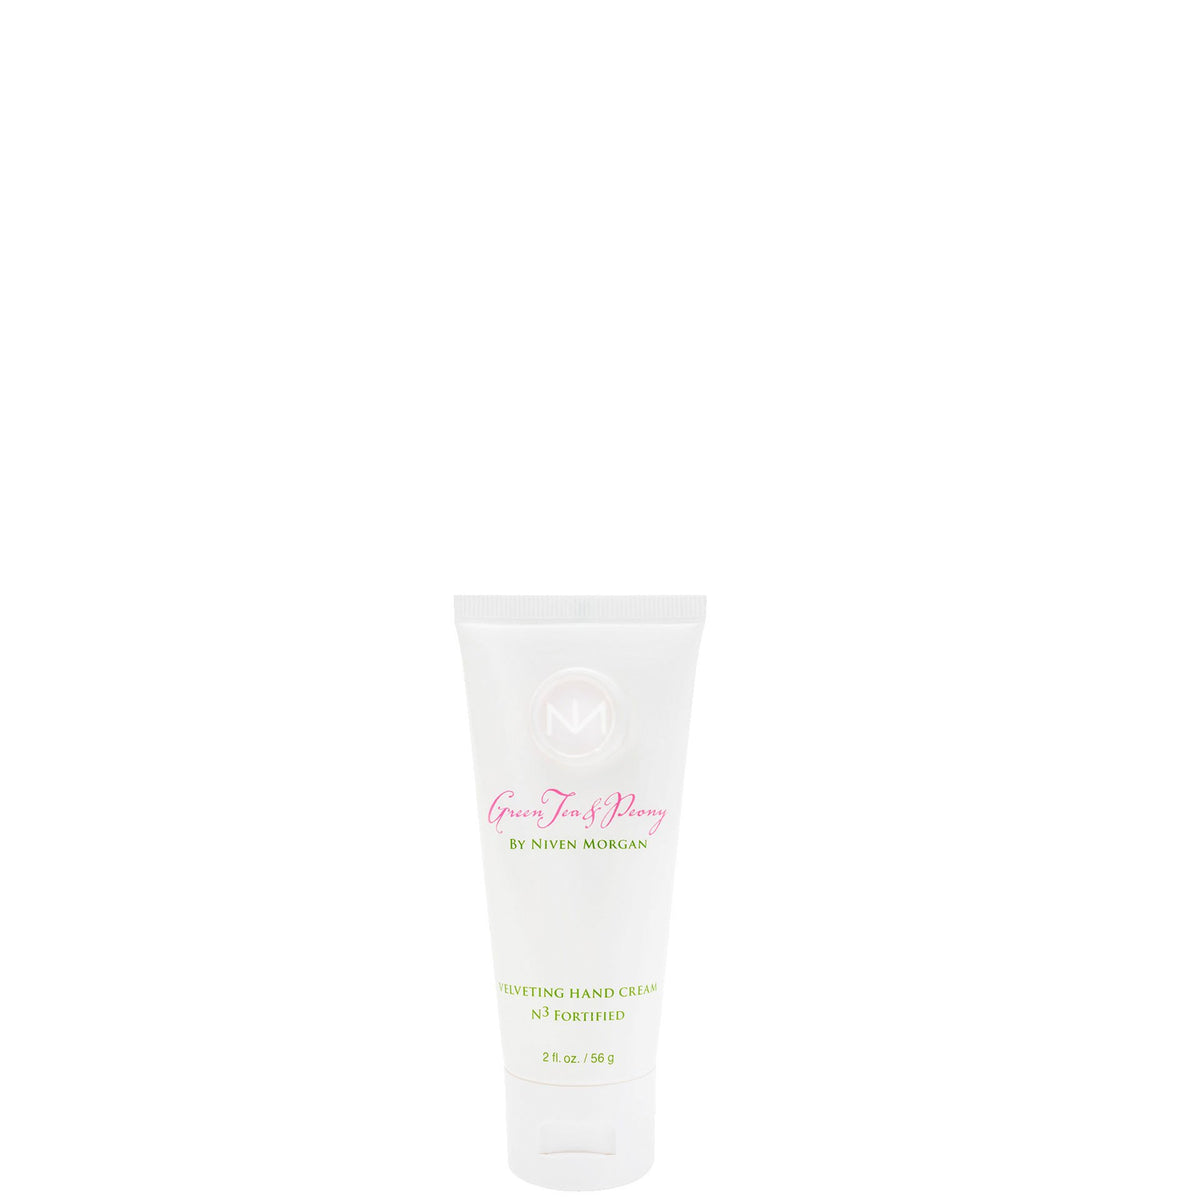 Niven Morgan - Green Tea & Peony Hand Cream